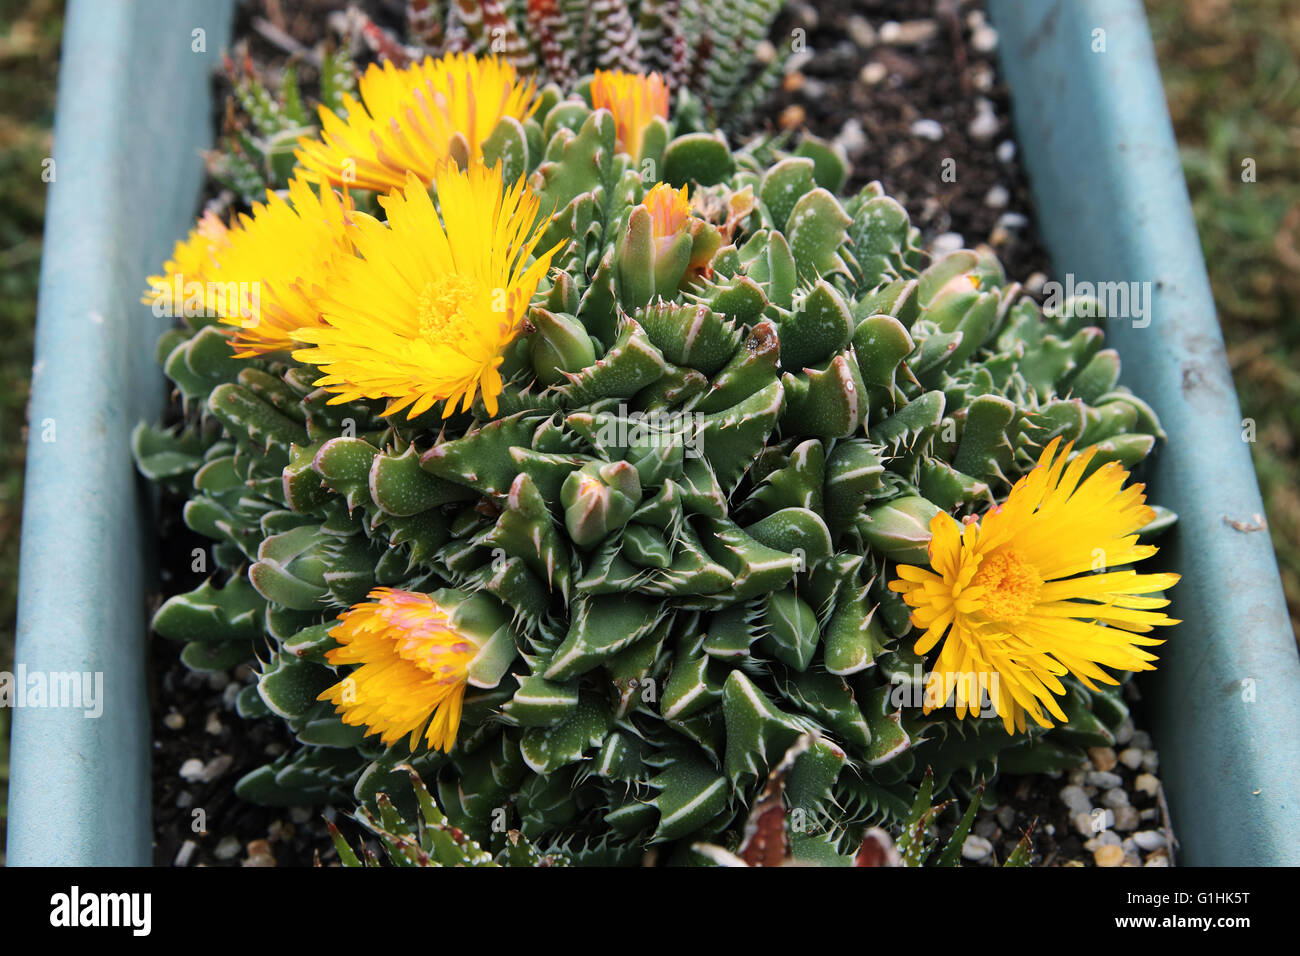 Tiger jaws succulent plant or known as Faucaria tigrina with yellow     Tiger jaws succulent plant or known as Faucaria tigrina with yellow flowers